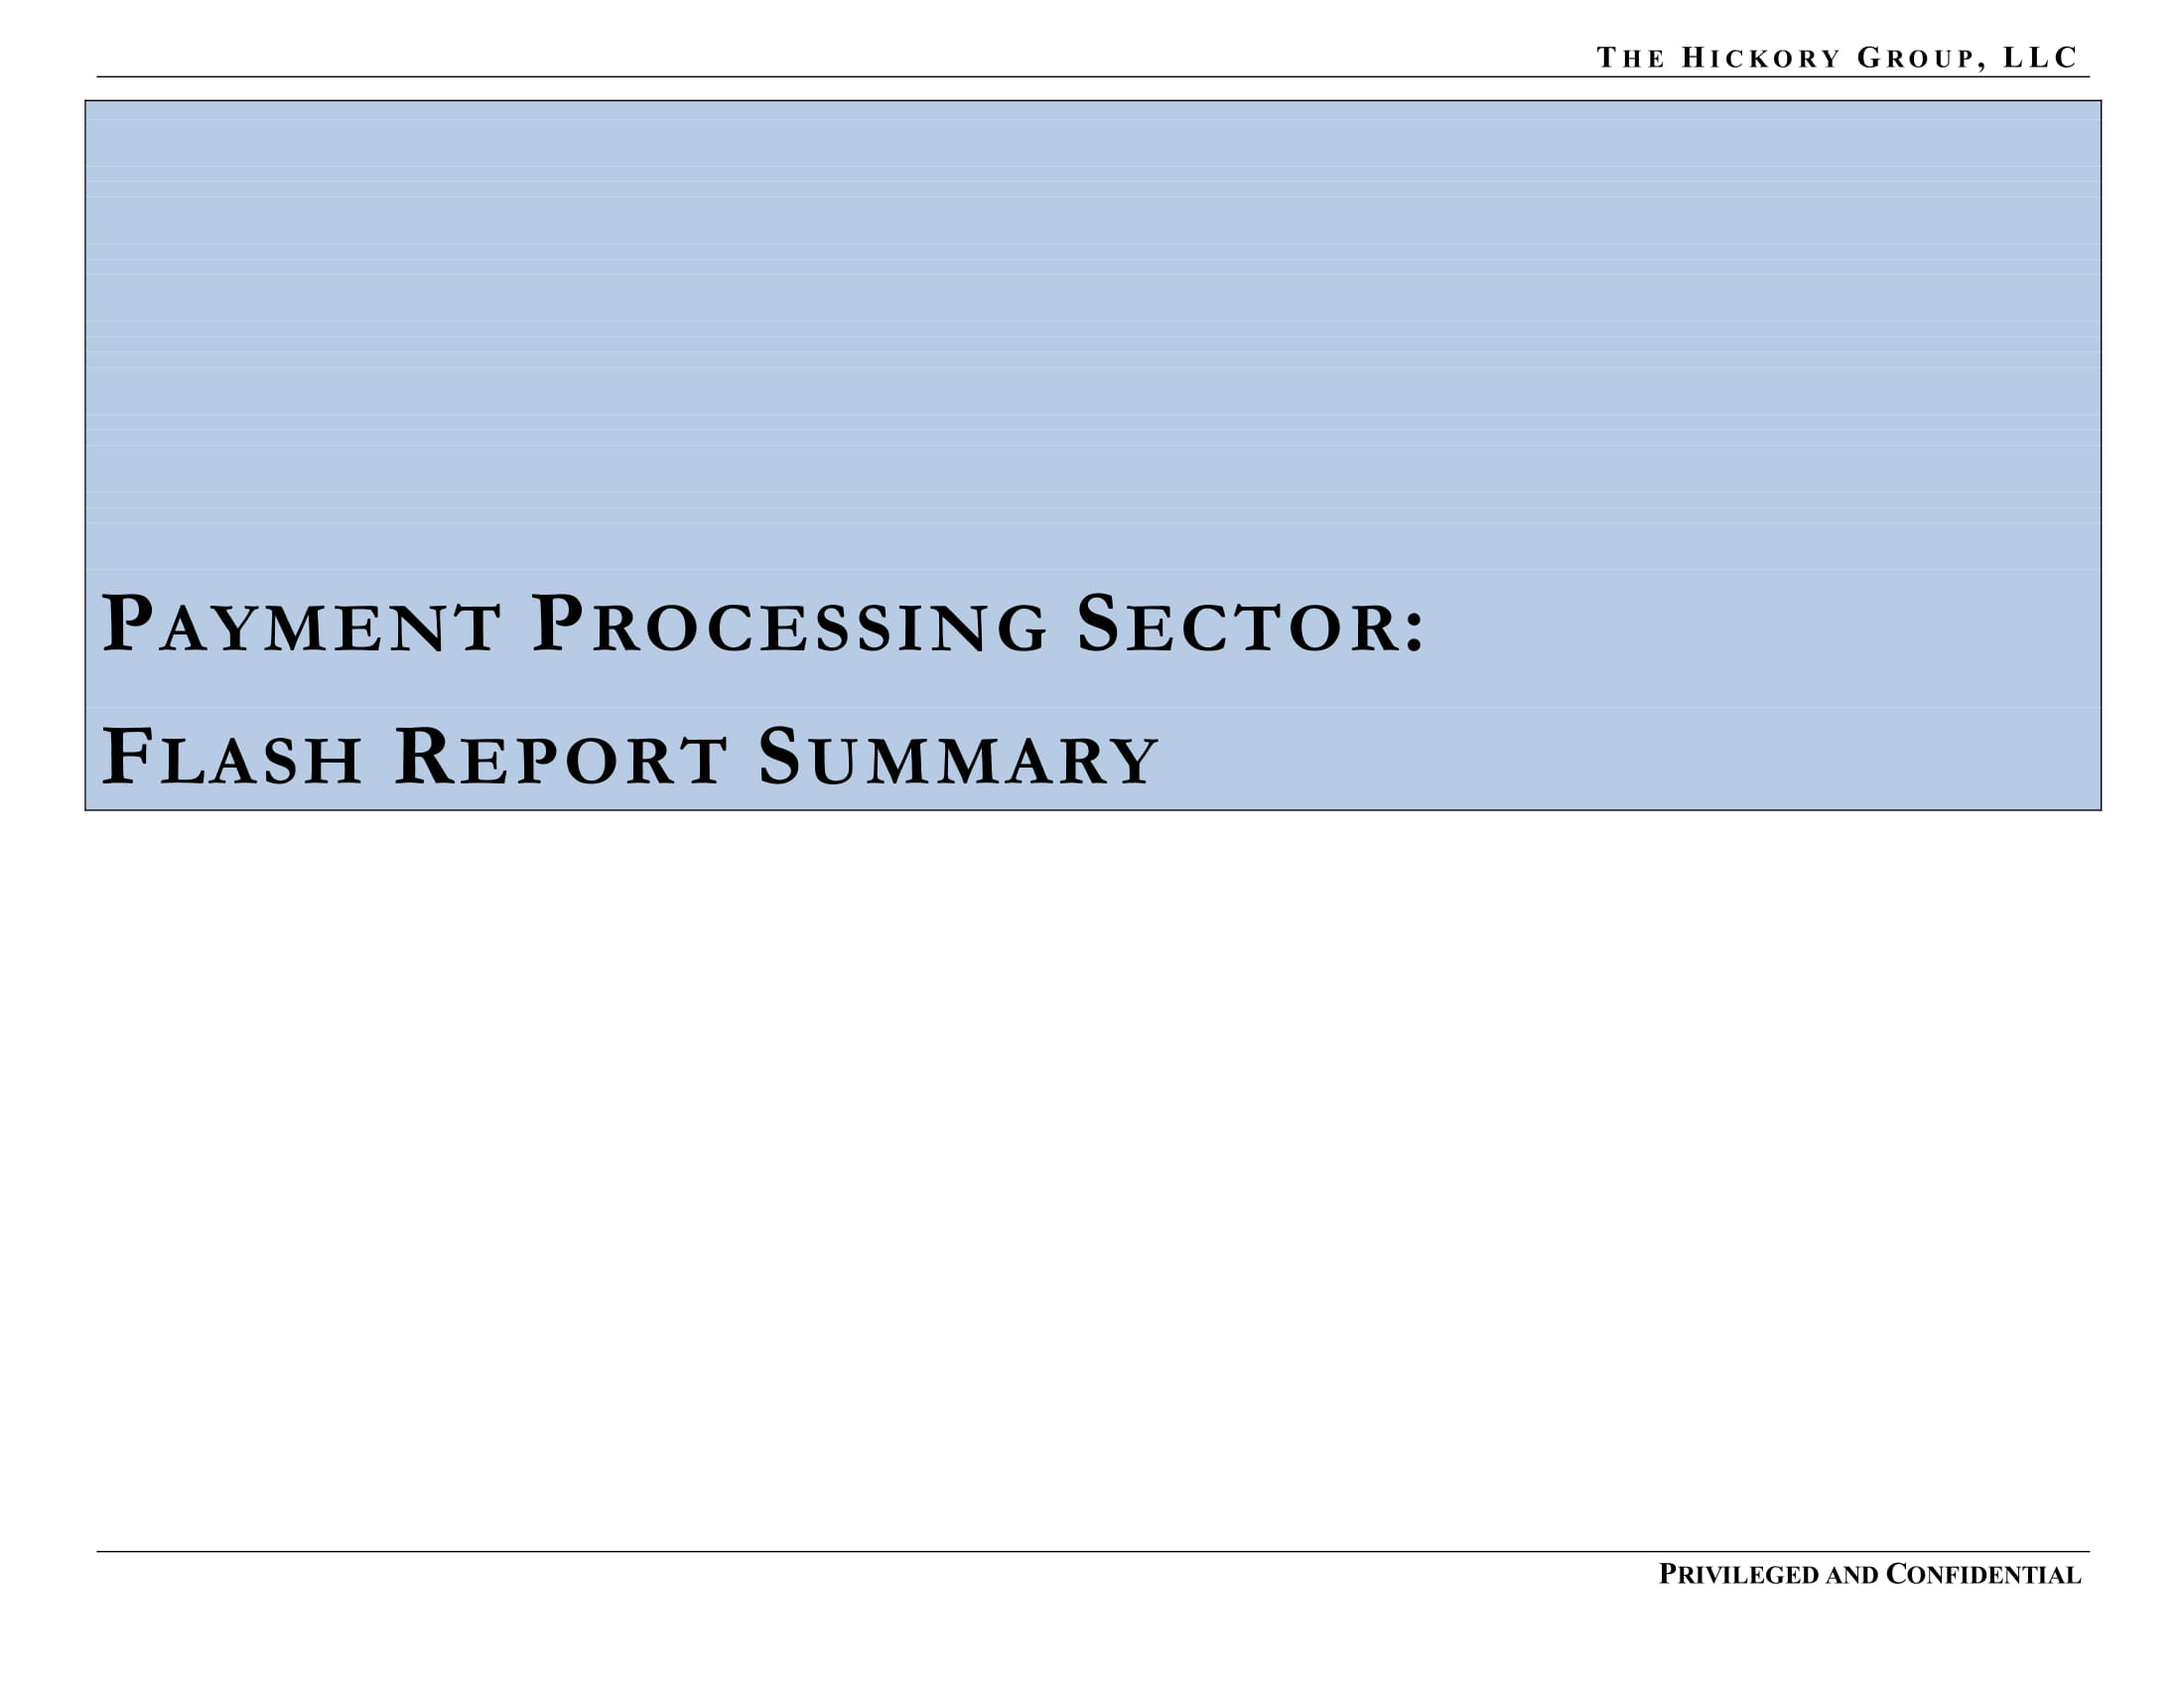 FINAL_THG FinTech Industry - Payment Processing Sector Flash Report (27 March 2019) Privileged & Confidential-03.jpg